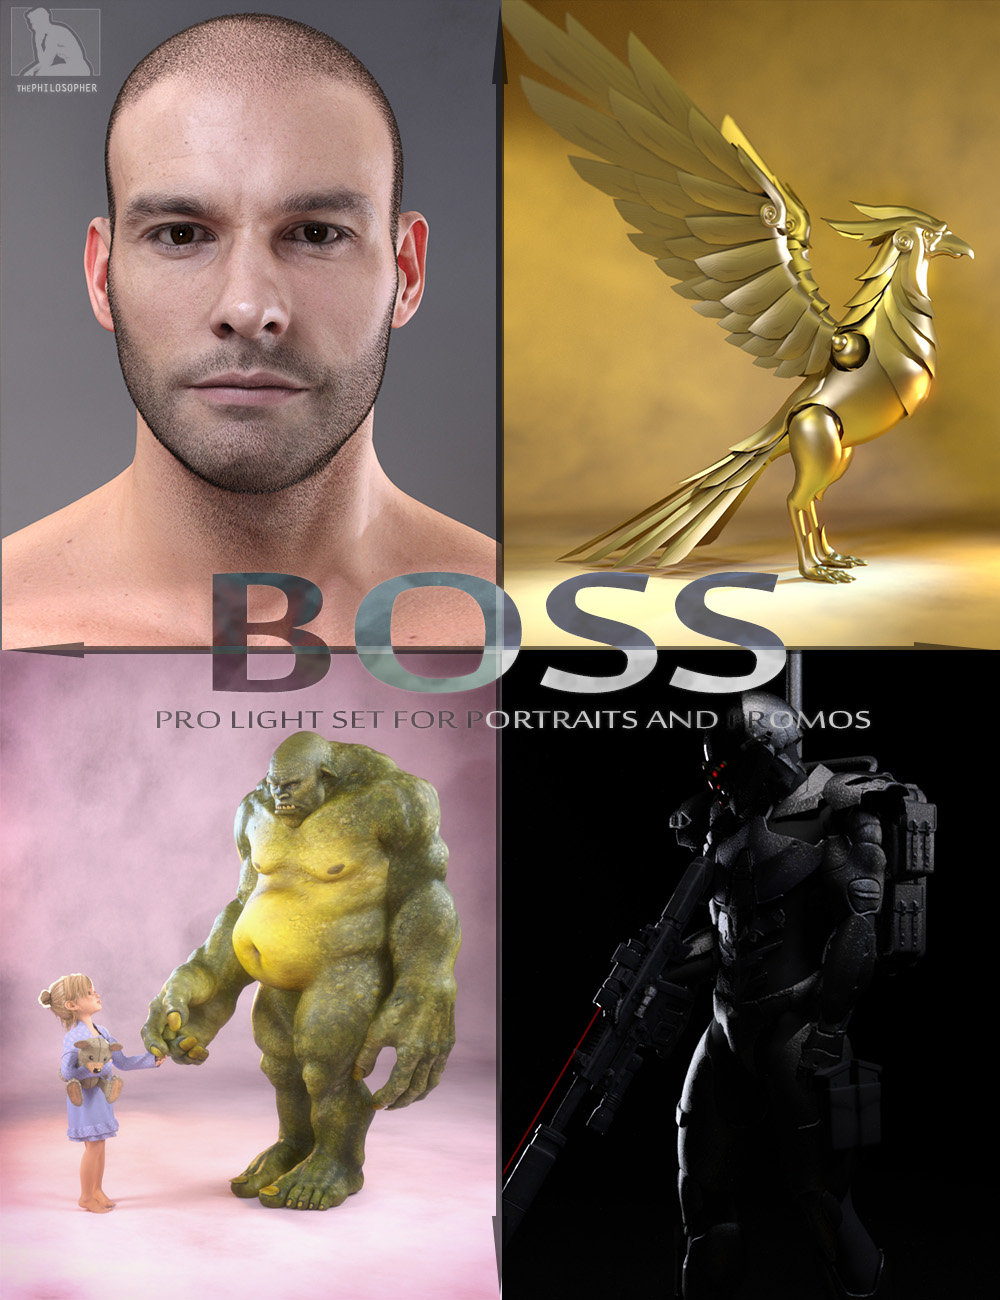 BOSS Pro Light Set for Portraits & Promos by: ThePhilosopher, 3D Models by Daz 3D